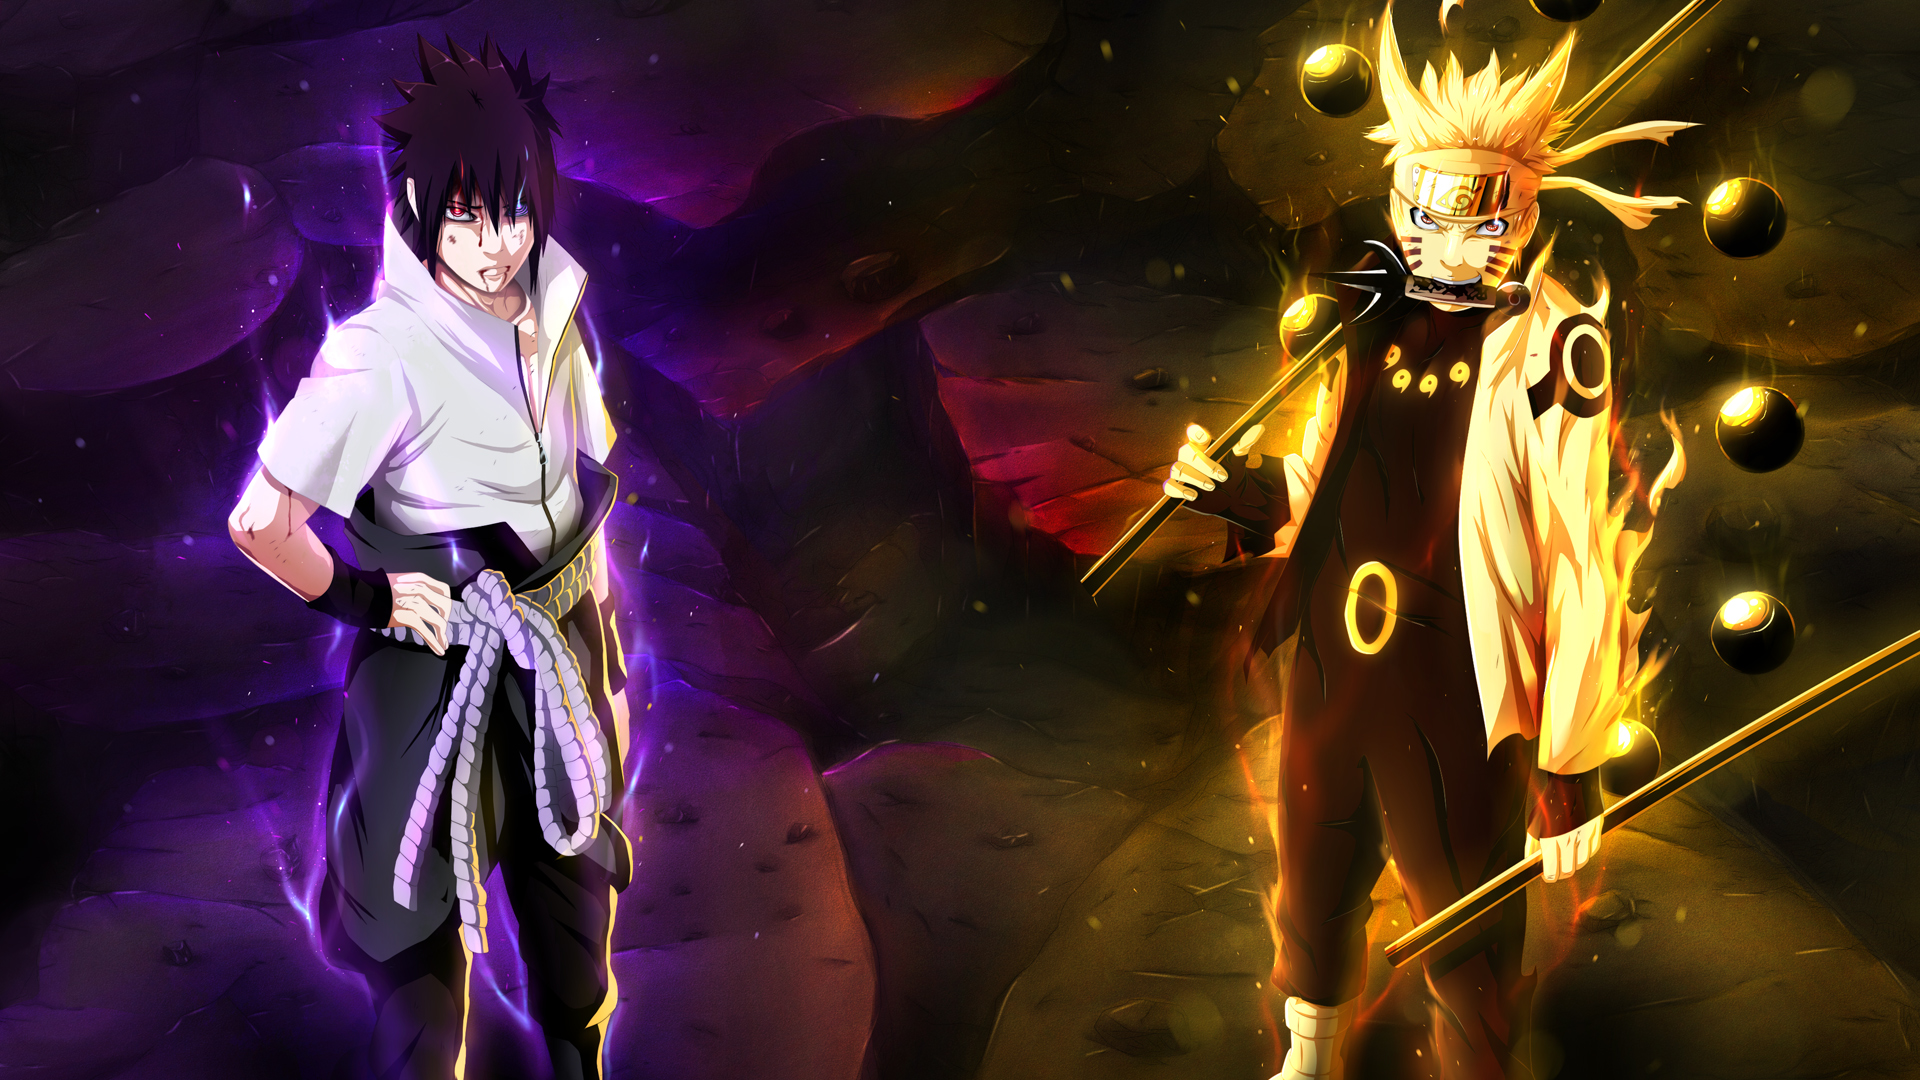 Naruto Sage Sasuke Rinnegan Eye Wallpaper HD 1920x1080